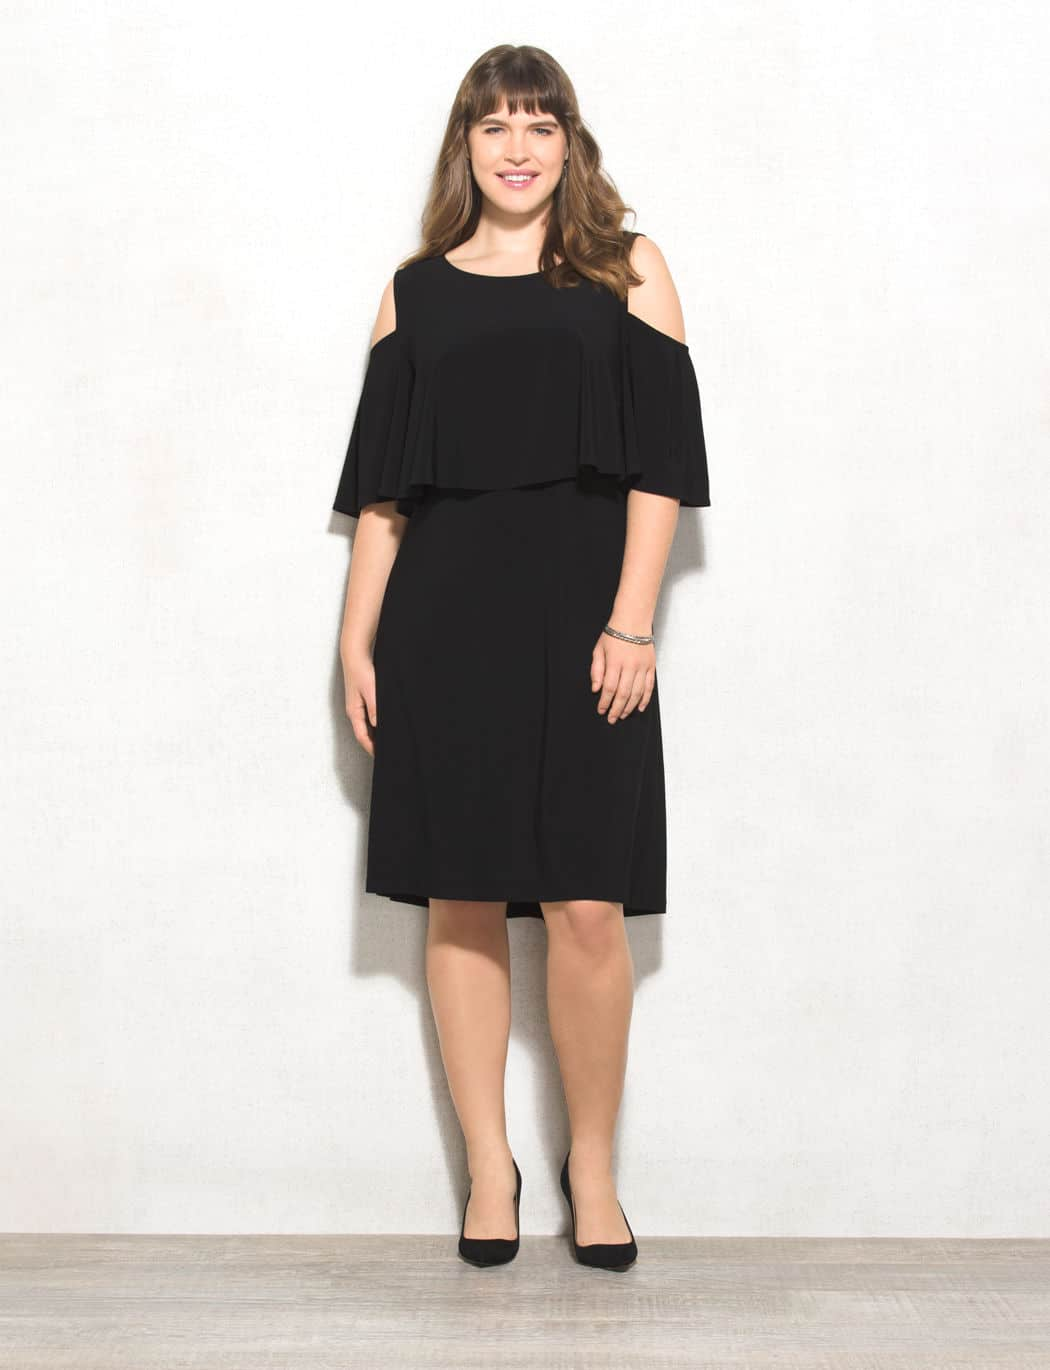 plus-size dresses - woman wearing black, off the shoulder holiday dress